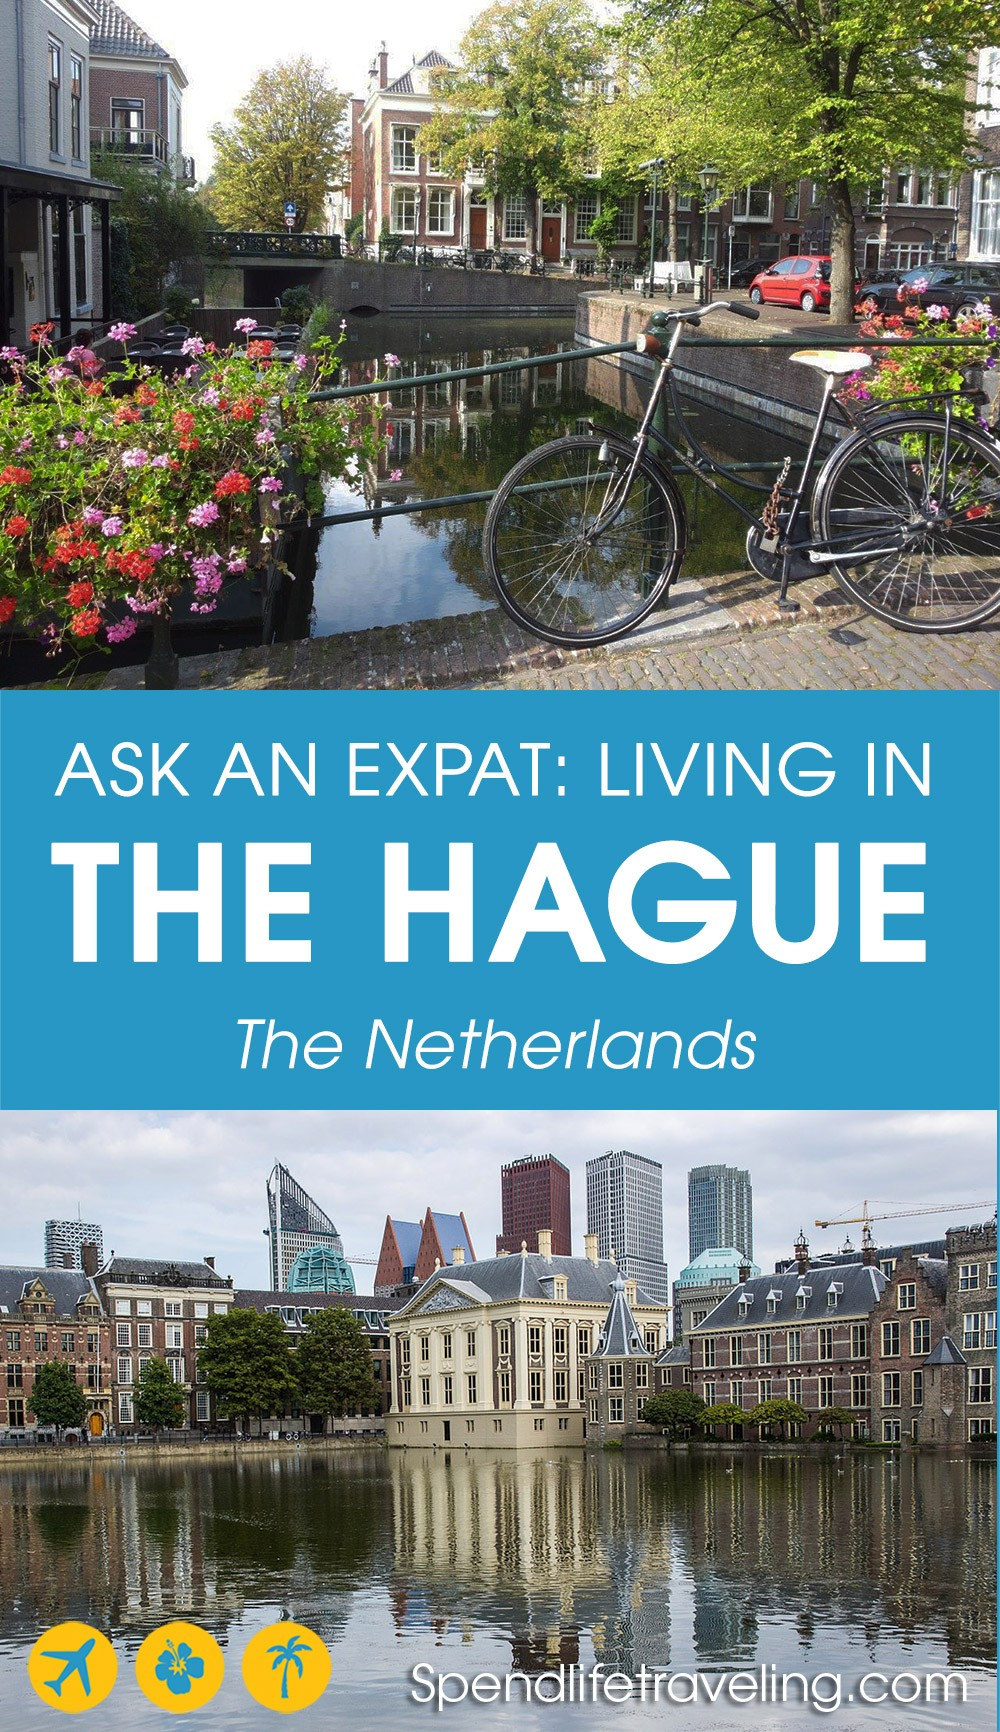 Interview with an expat about moving to and living in The Hague, the Netherlands. #TheHague #expatlife